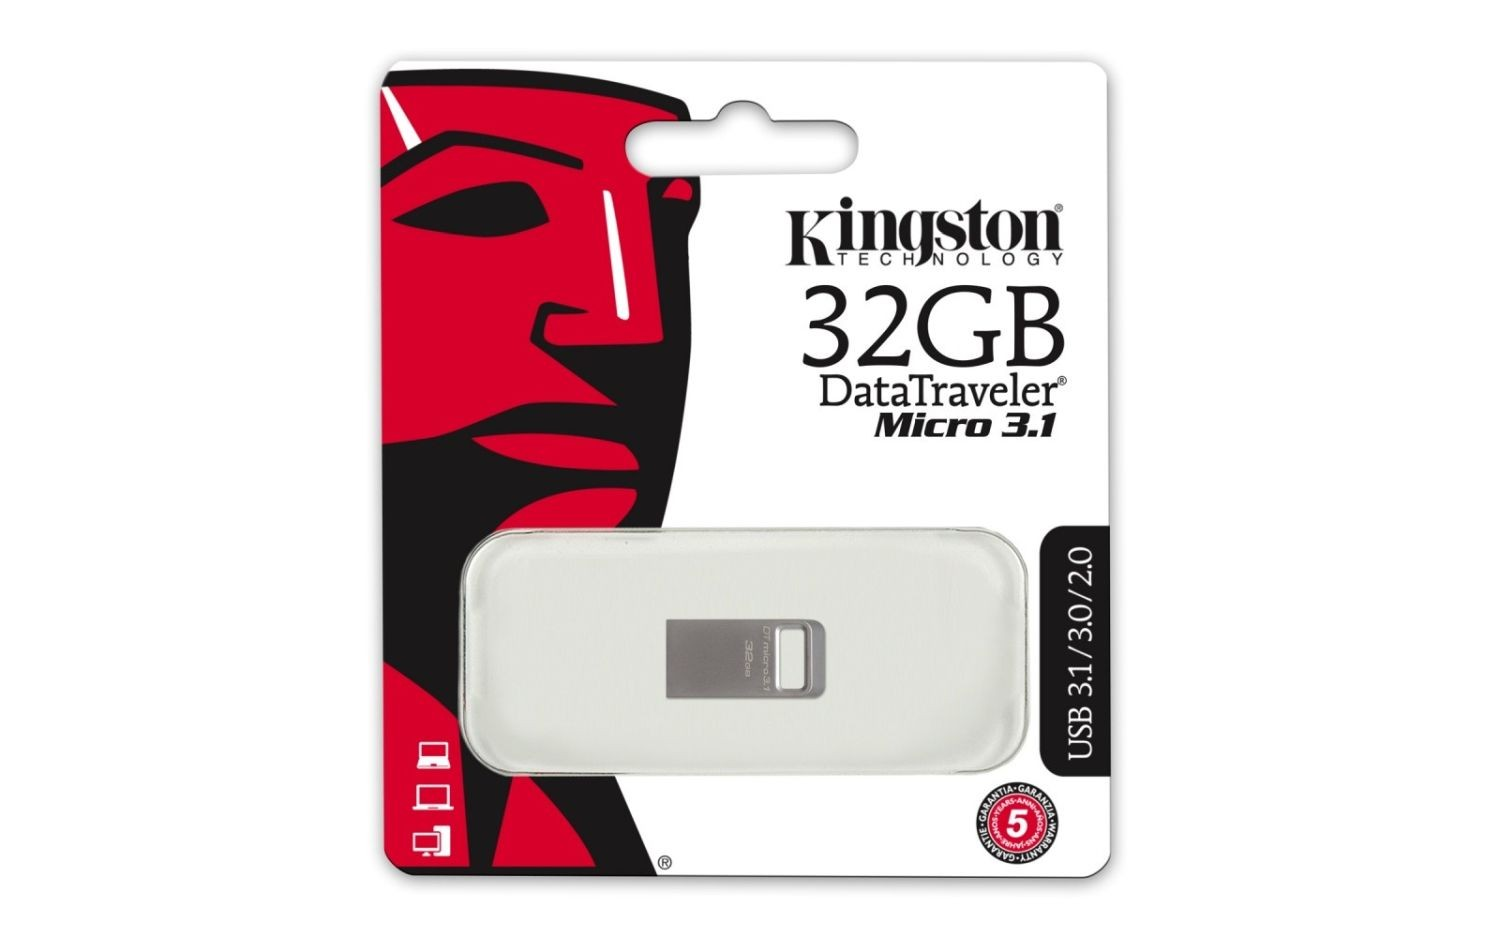 Kingston pamięć USB 32GB DTMicro USB 3.1/3.0 Type-A metal ultra